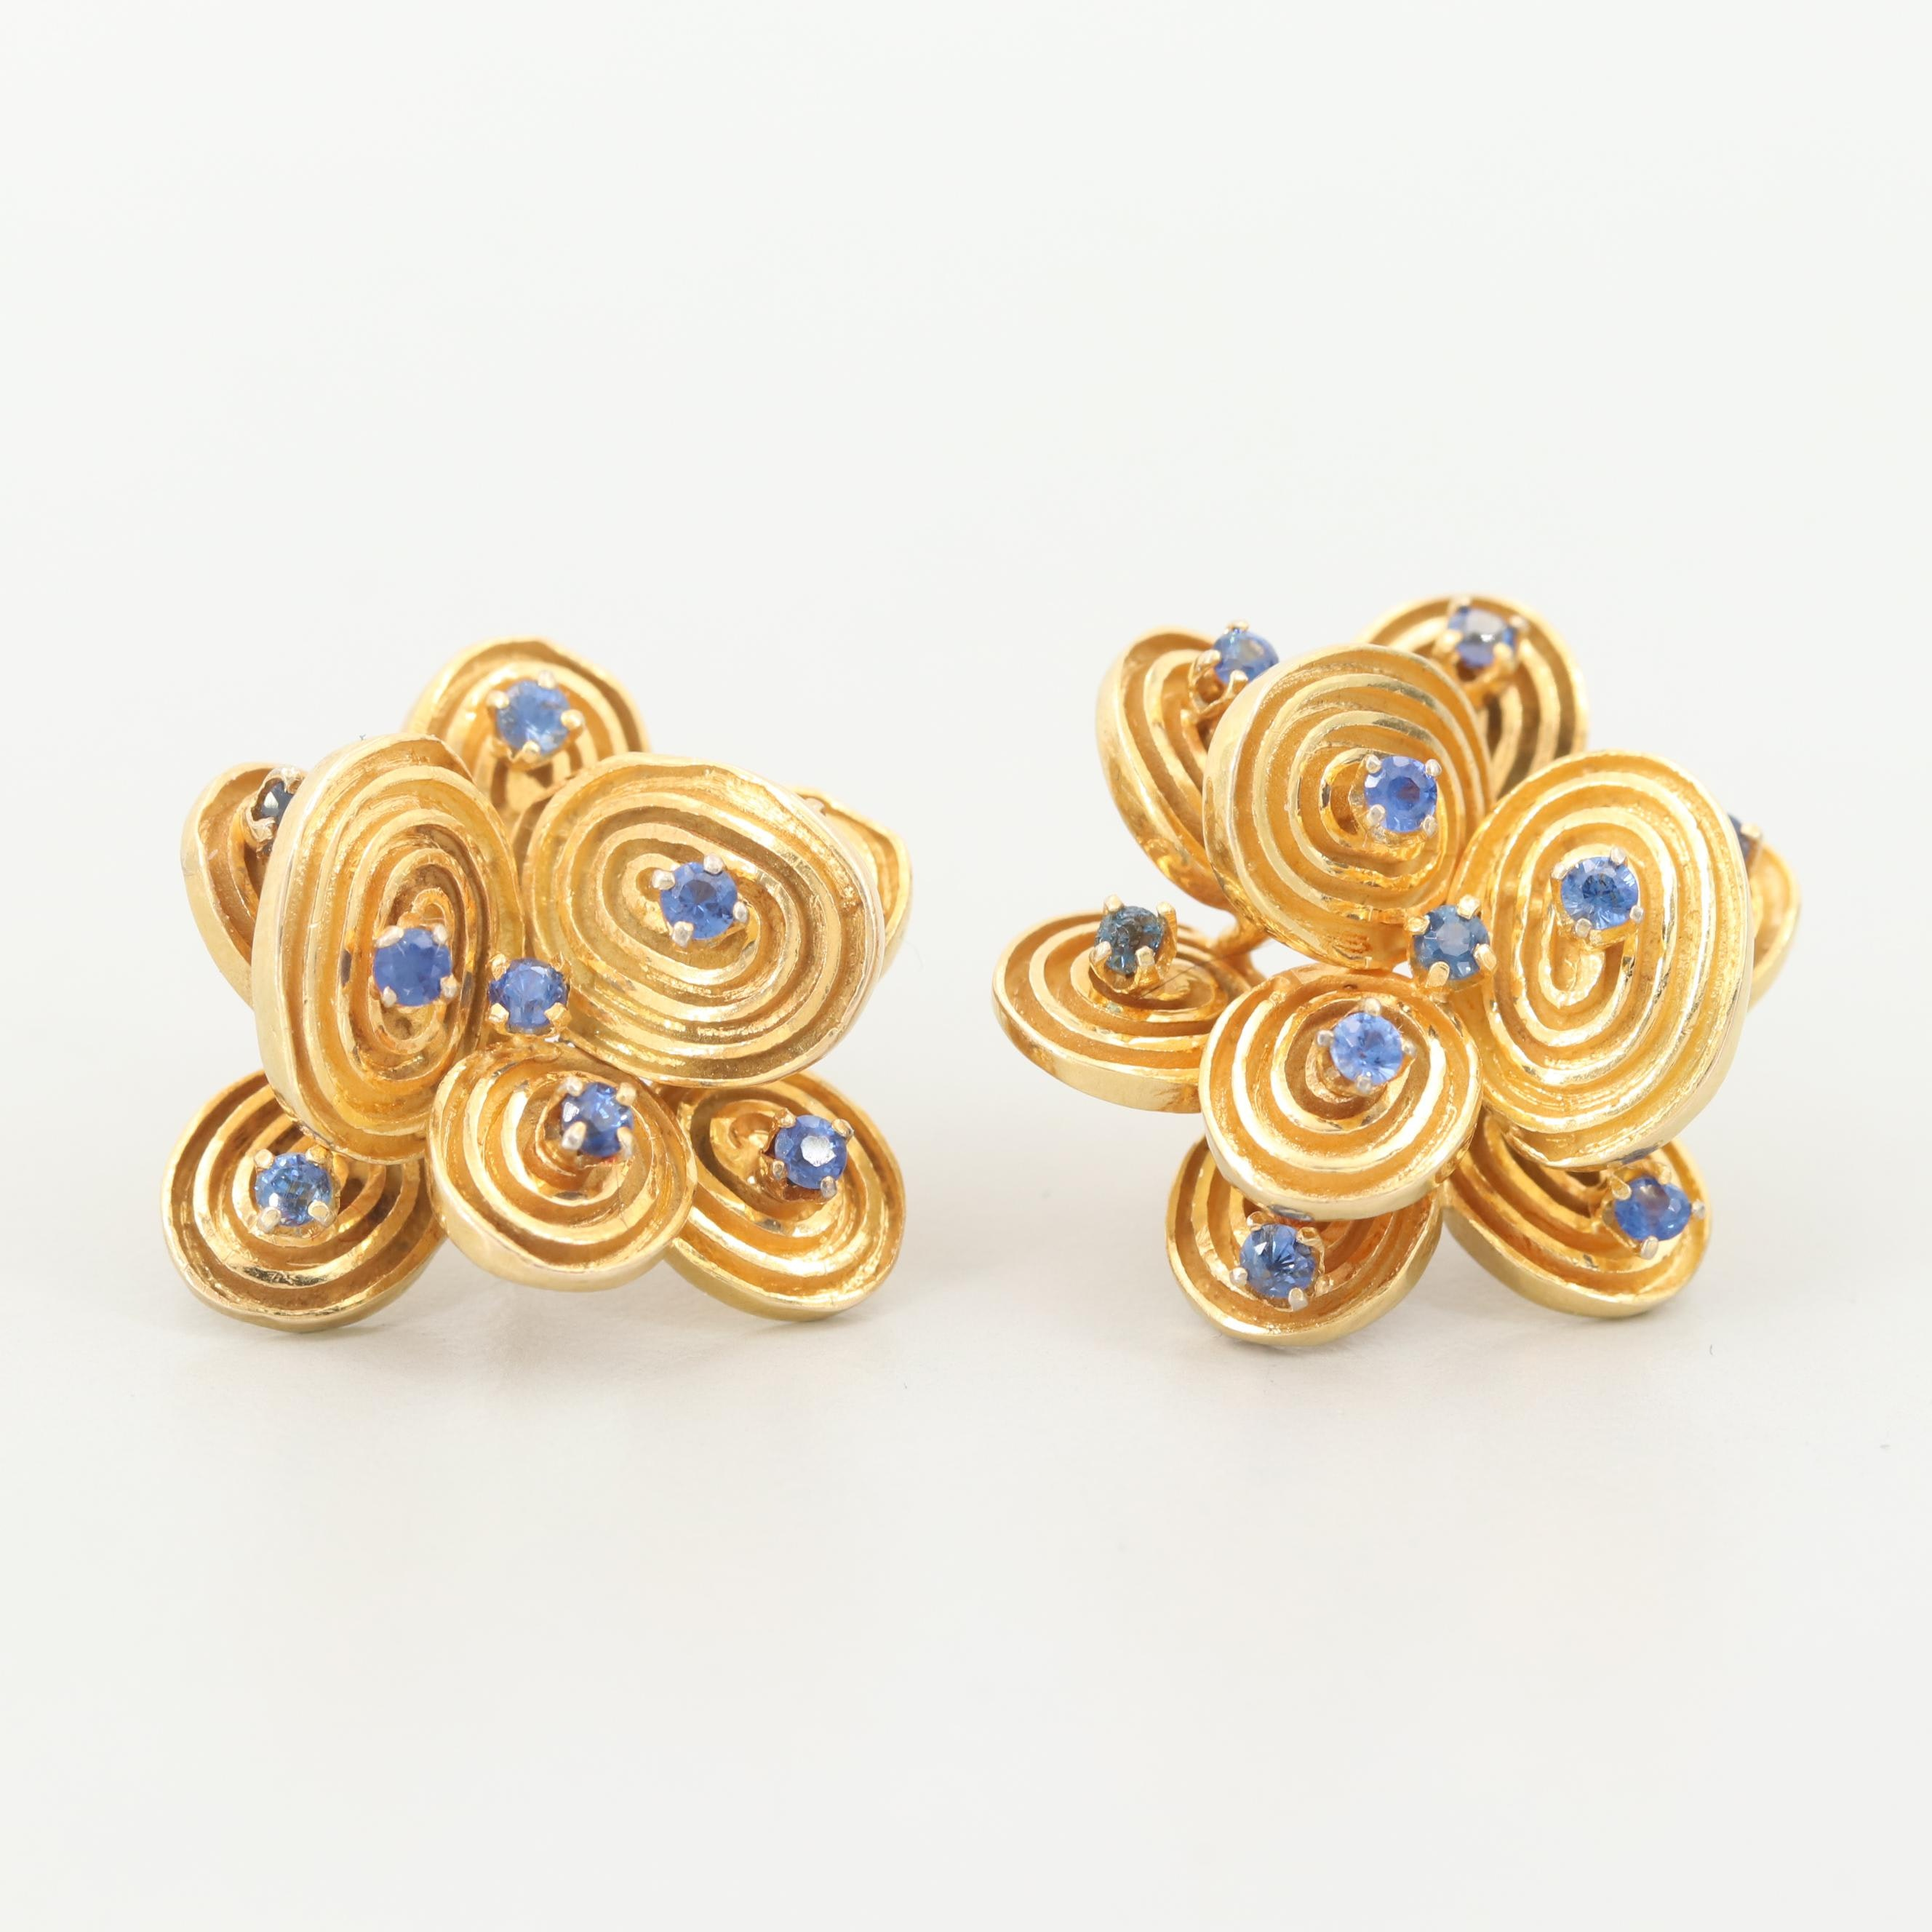 14K Yellow Gold Blue Sapphire Stylized Flower Earrings